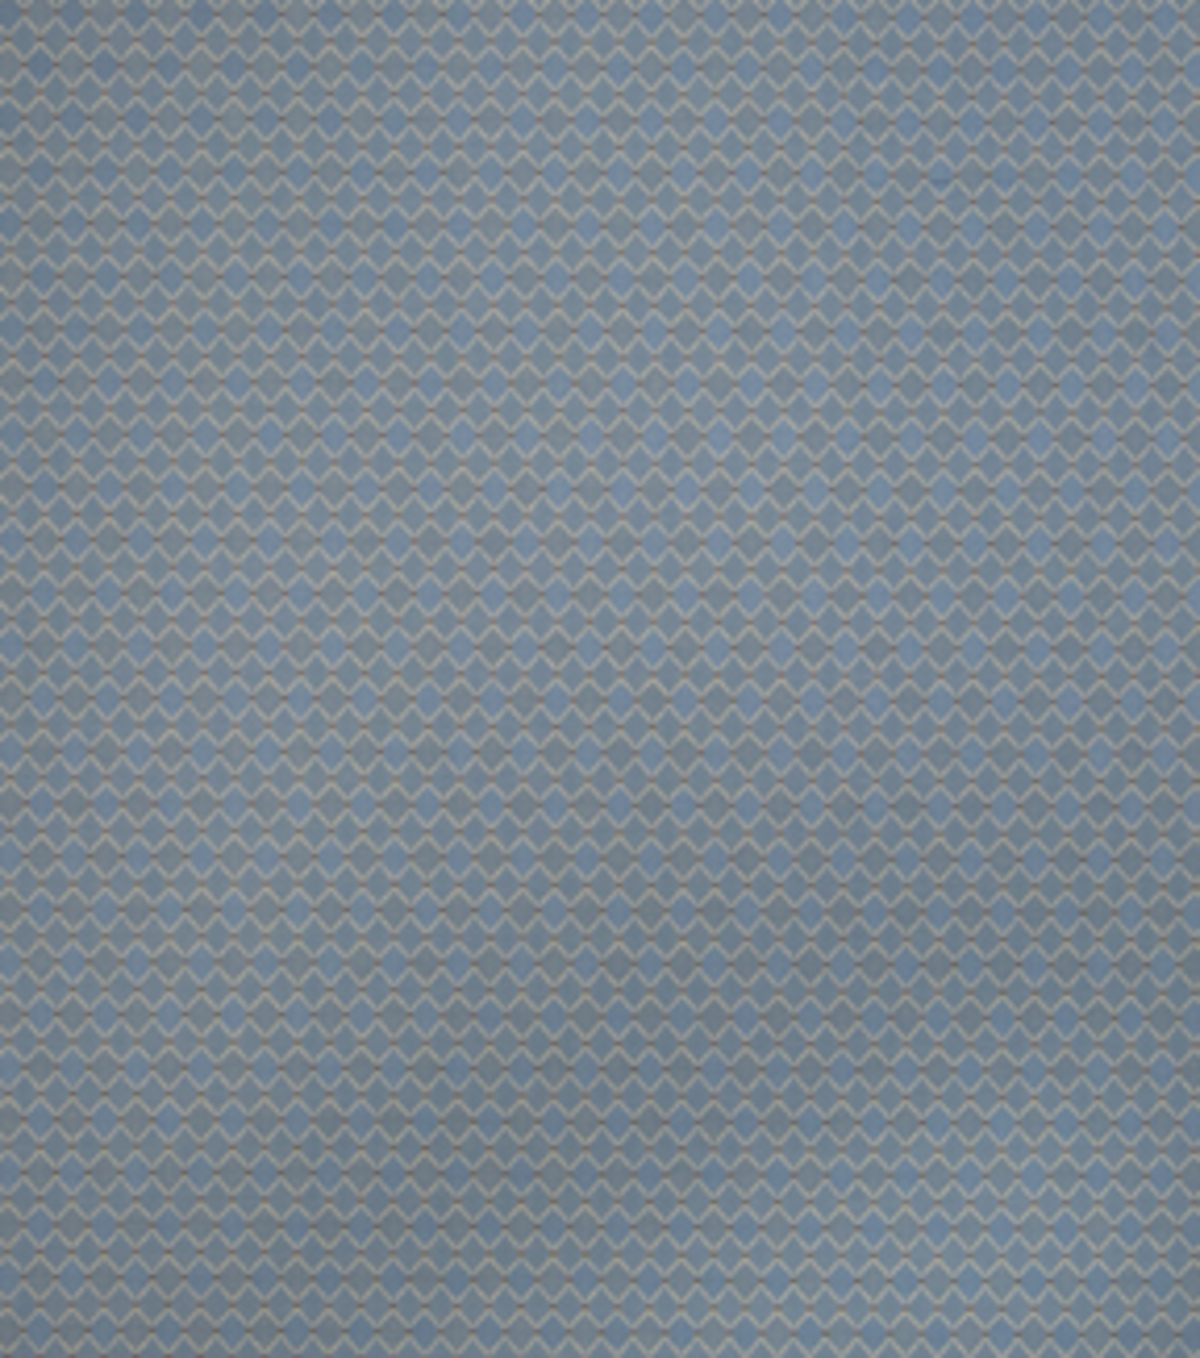 Home Decor 8\u0022x8\u0022 Fabric Swatch-Eaton Square Clinger Harbour